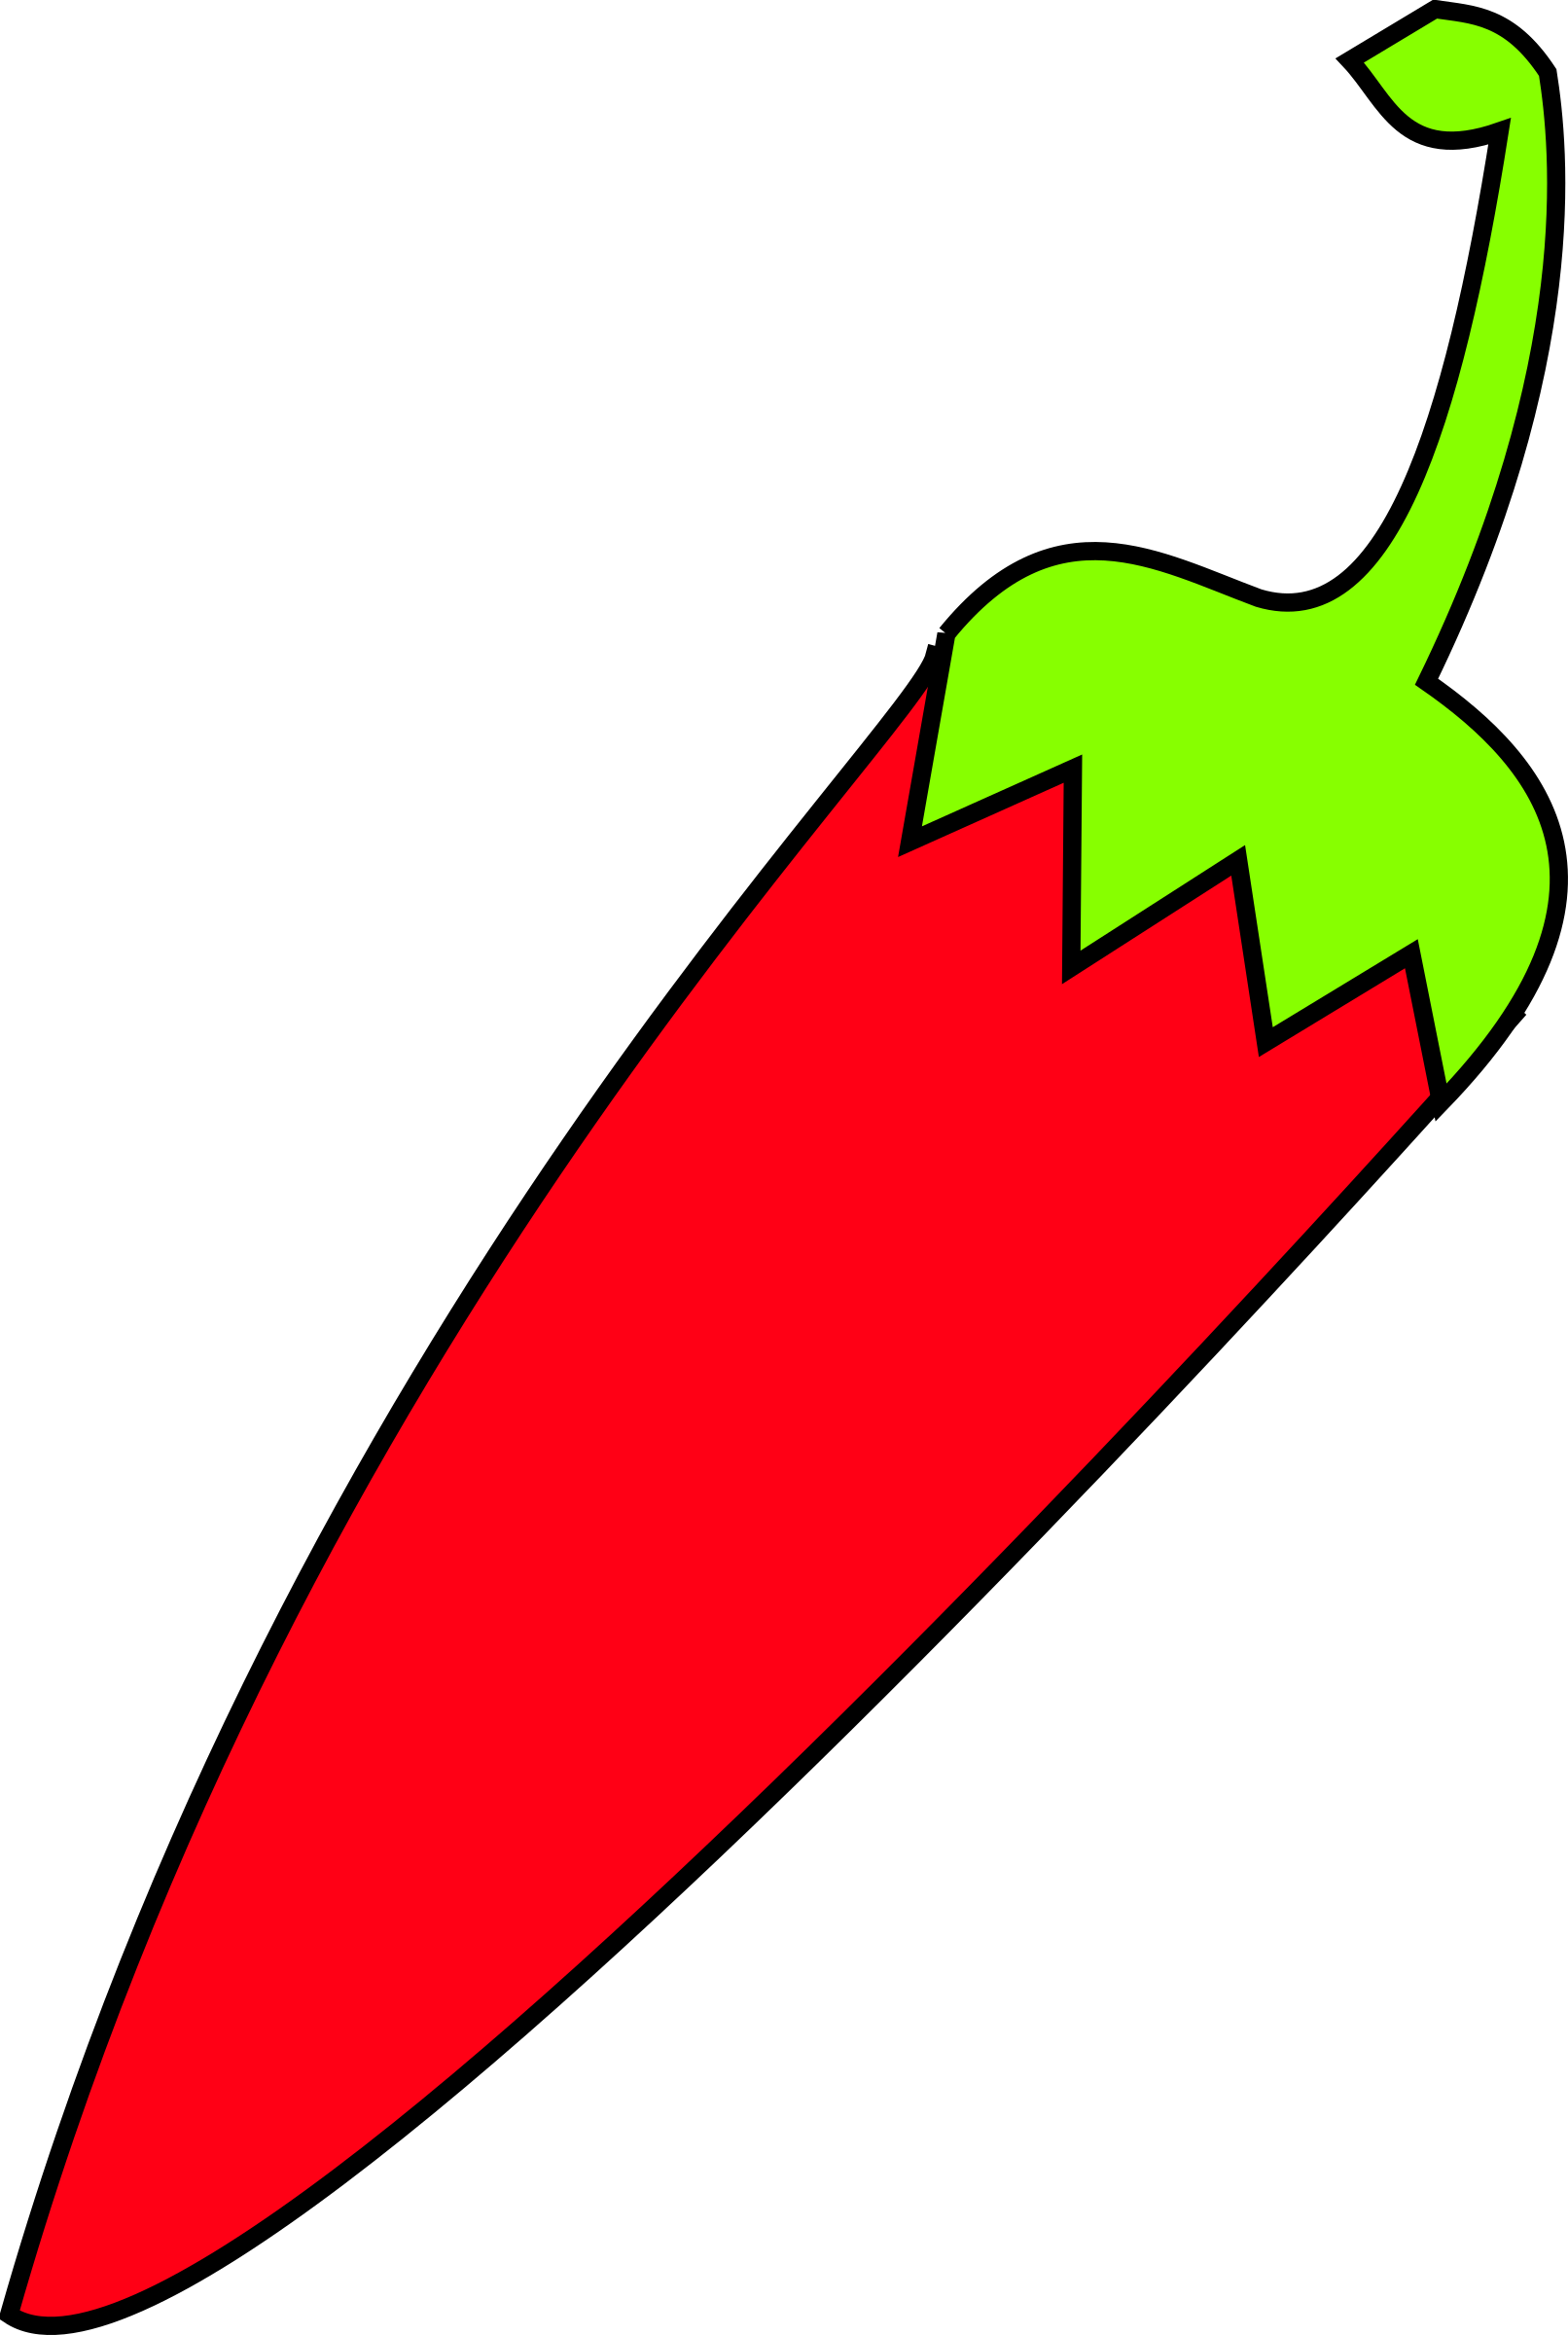 red chili with green tail by sebek